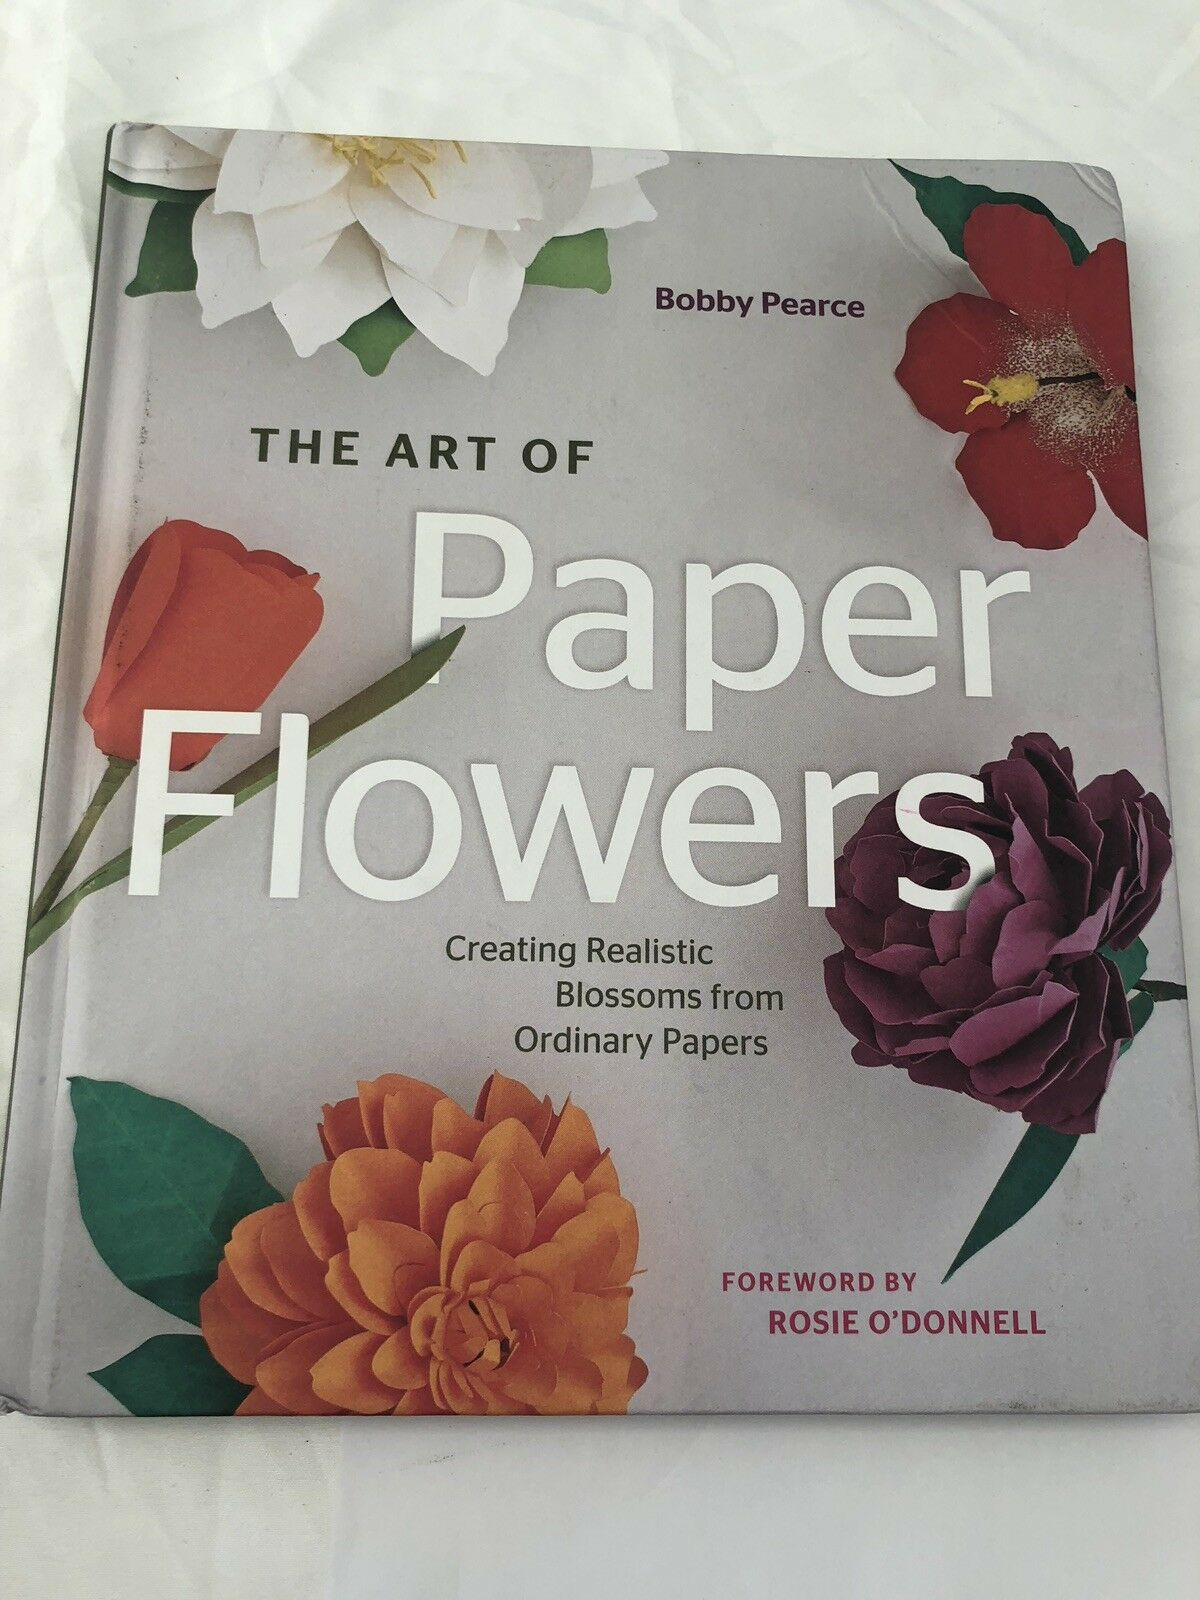 The art of paper flowers creating realistic blossoms from ordinary the art of paper flowers creating realistic blossoms from ordinary papers by bobby pearce 2016 hardcover ebay mightylinksfo